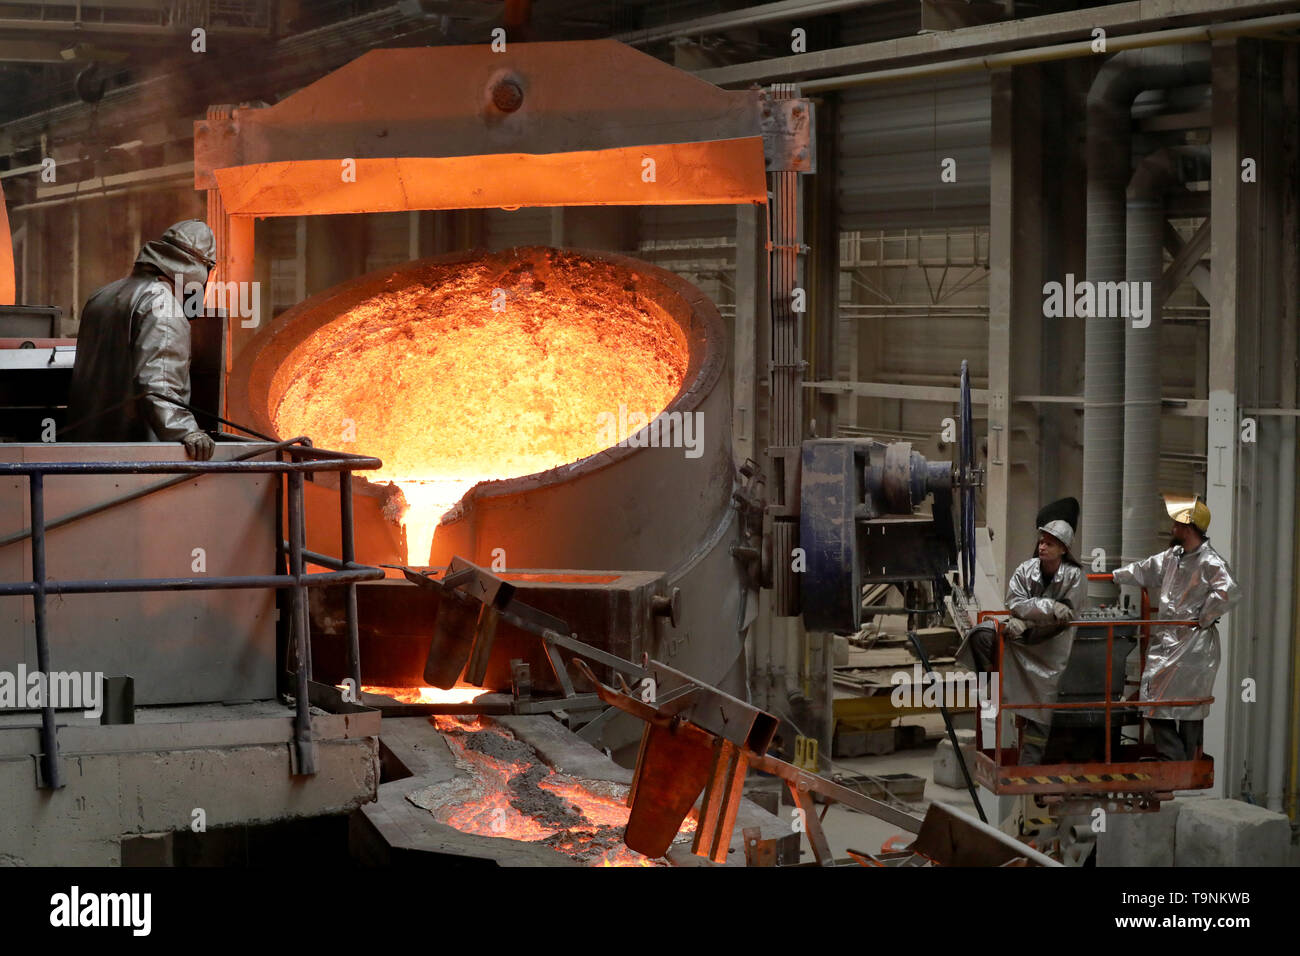 Waren, Germany. 08th May, 2019. In the foundry of Mecklenburger Metallguss GmbH MMG, 165 tons of aluminium bronze with a temperature of approx. 1,170 degrees are cast into a huge mould for a ship propeller. The propeller for a large Korean container freighter will later have a diameter of 10.40 meters and weigh 117 tons. Less than a year after its transition to independence, MMG sees itself on the upswing again. Sales of 50 million euros are expected for 2019, about ten million euros more than in 2018. Credit: Bernd Wüstneck/dpa/Alamy Live News - Stock Image